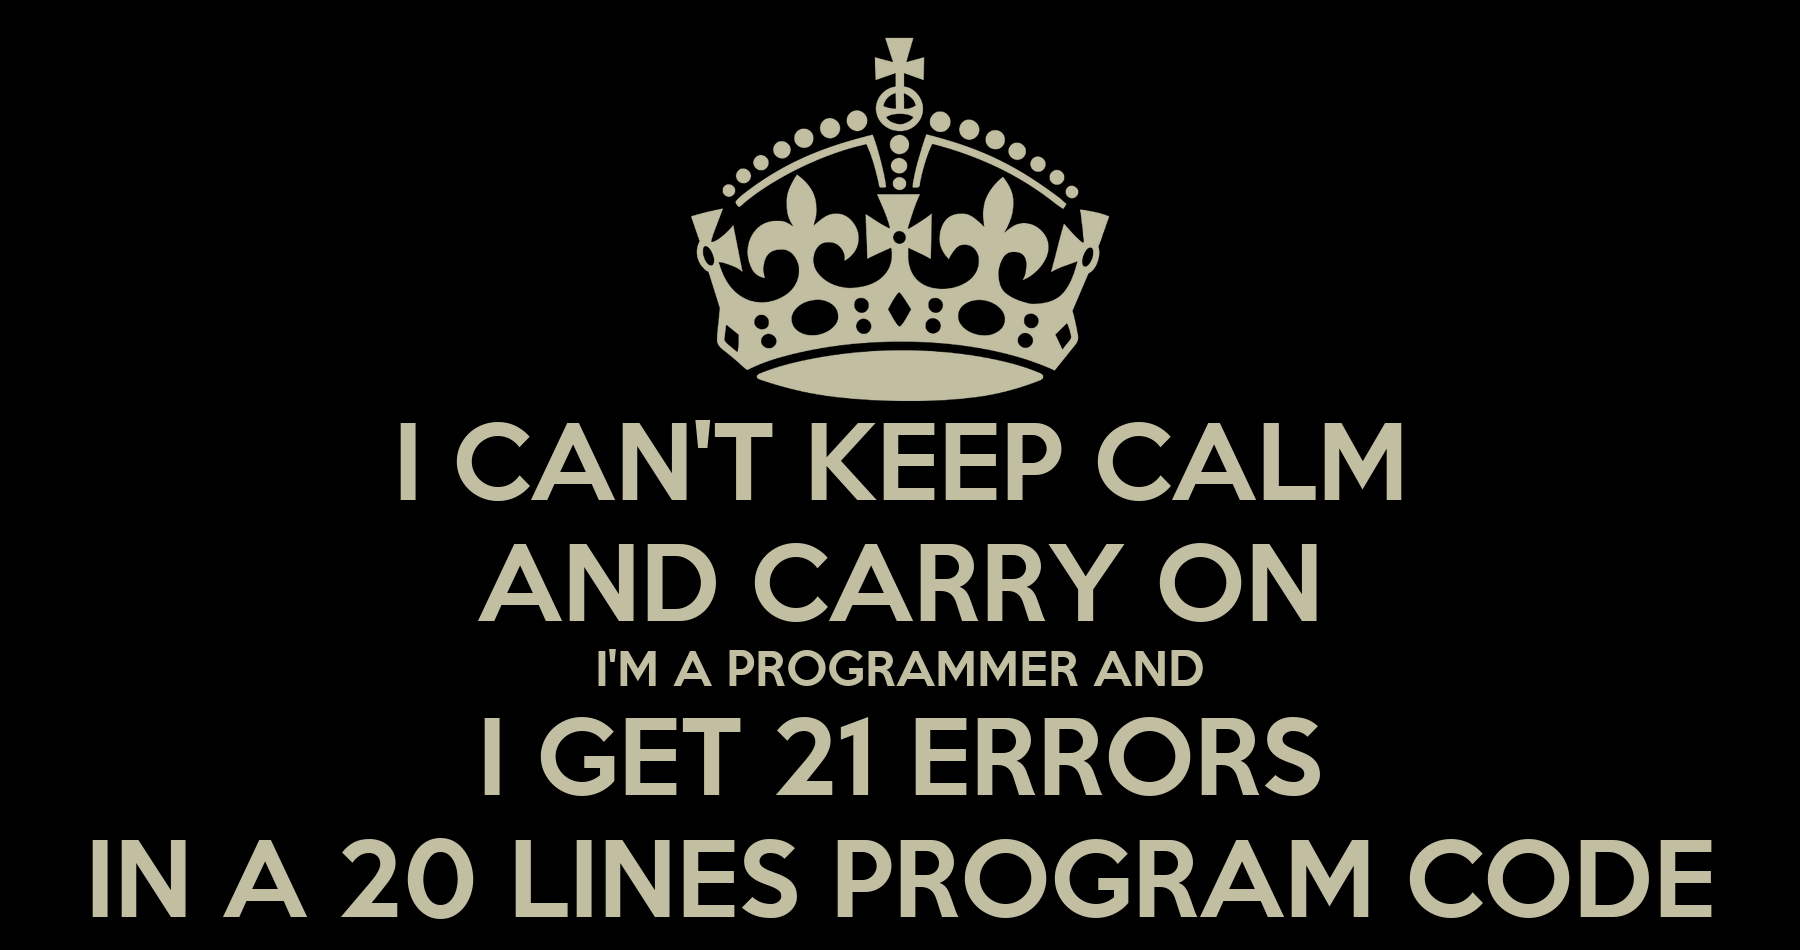 I CAN'T KEEP CALM AND CARRY ON I'M A PROGRAMMER AND I GET